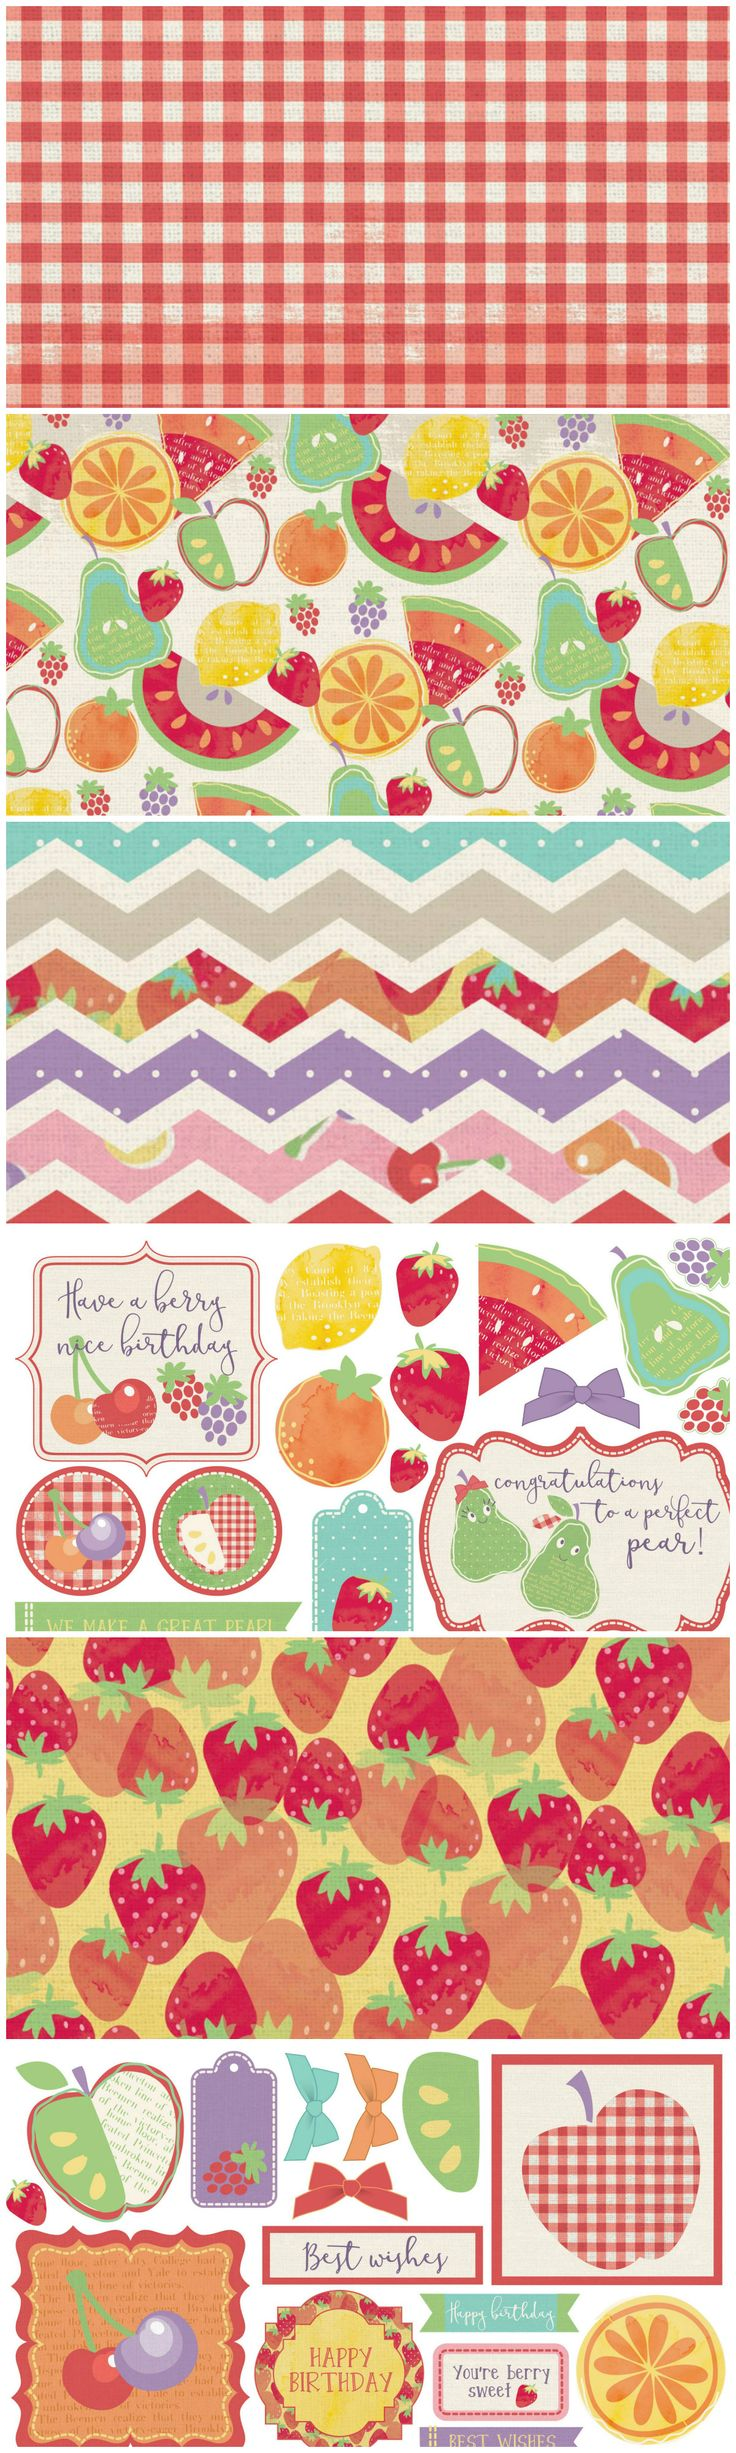 Free Printable Fruit Salad Digital Kit from Papercraft Inspirations Magazine